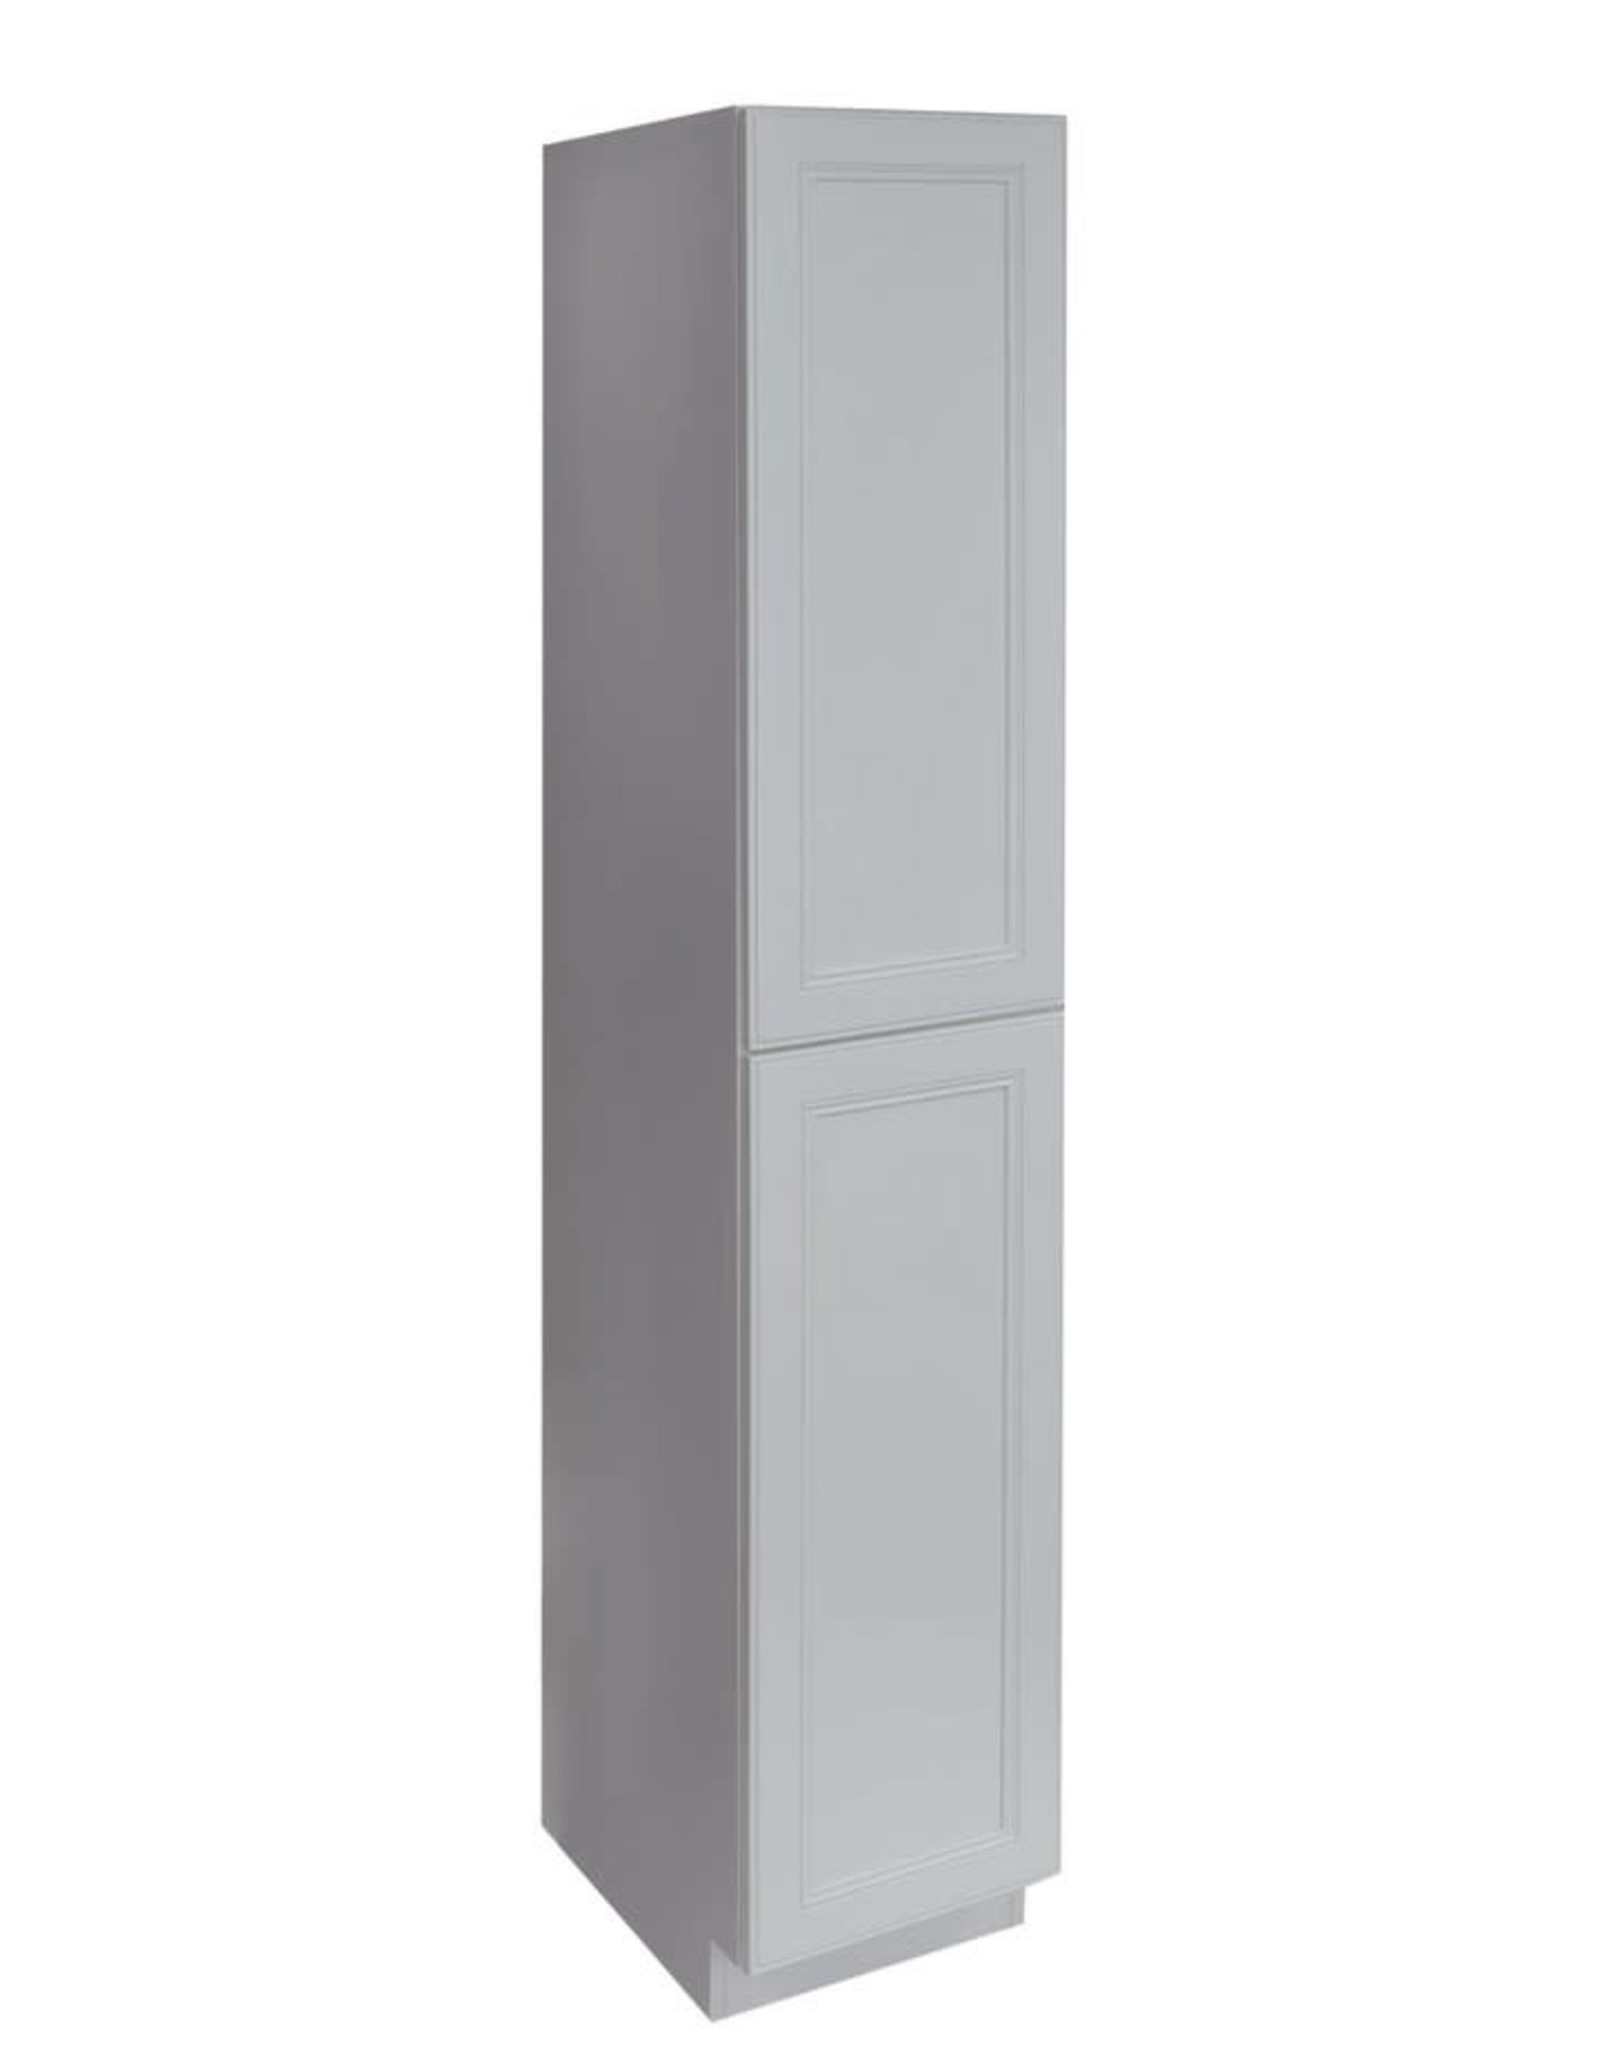 Classic Brand Cabinetry Linen Tower- Left Hinge